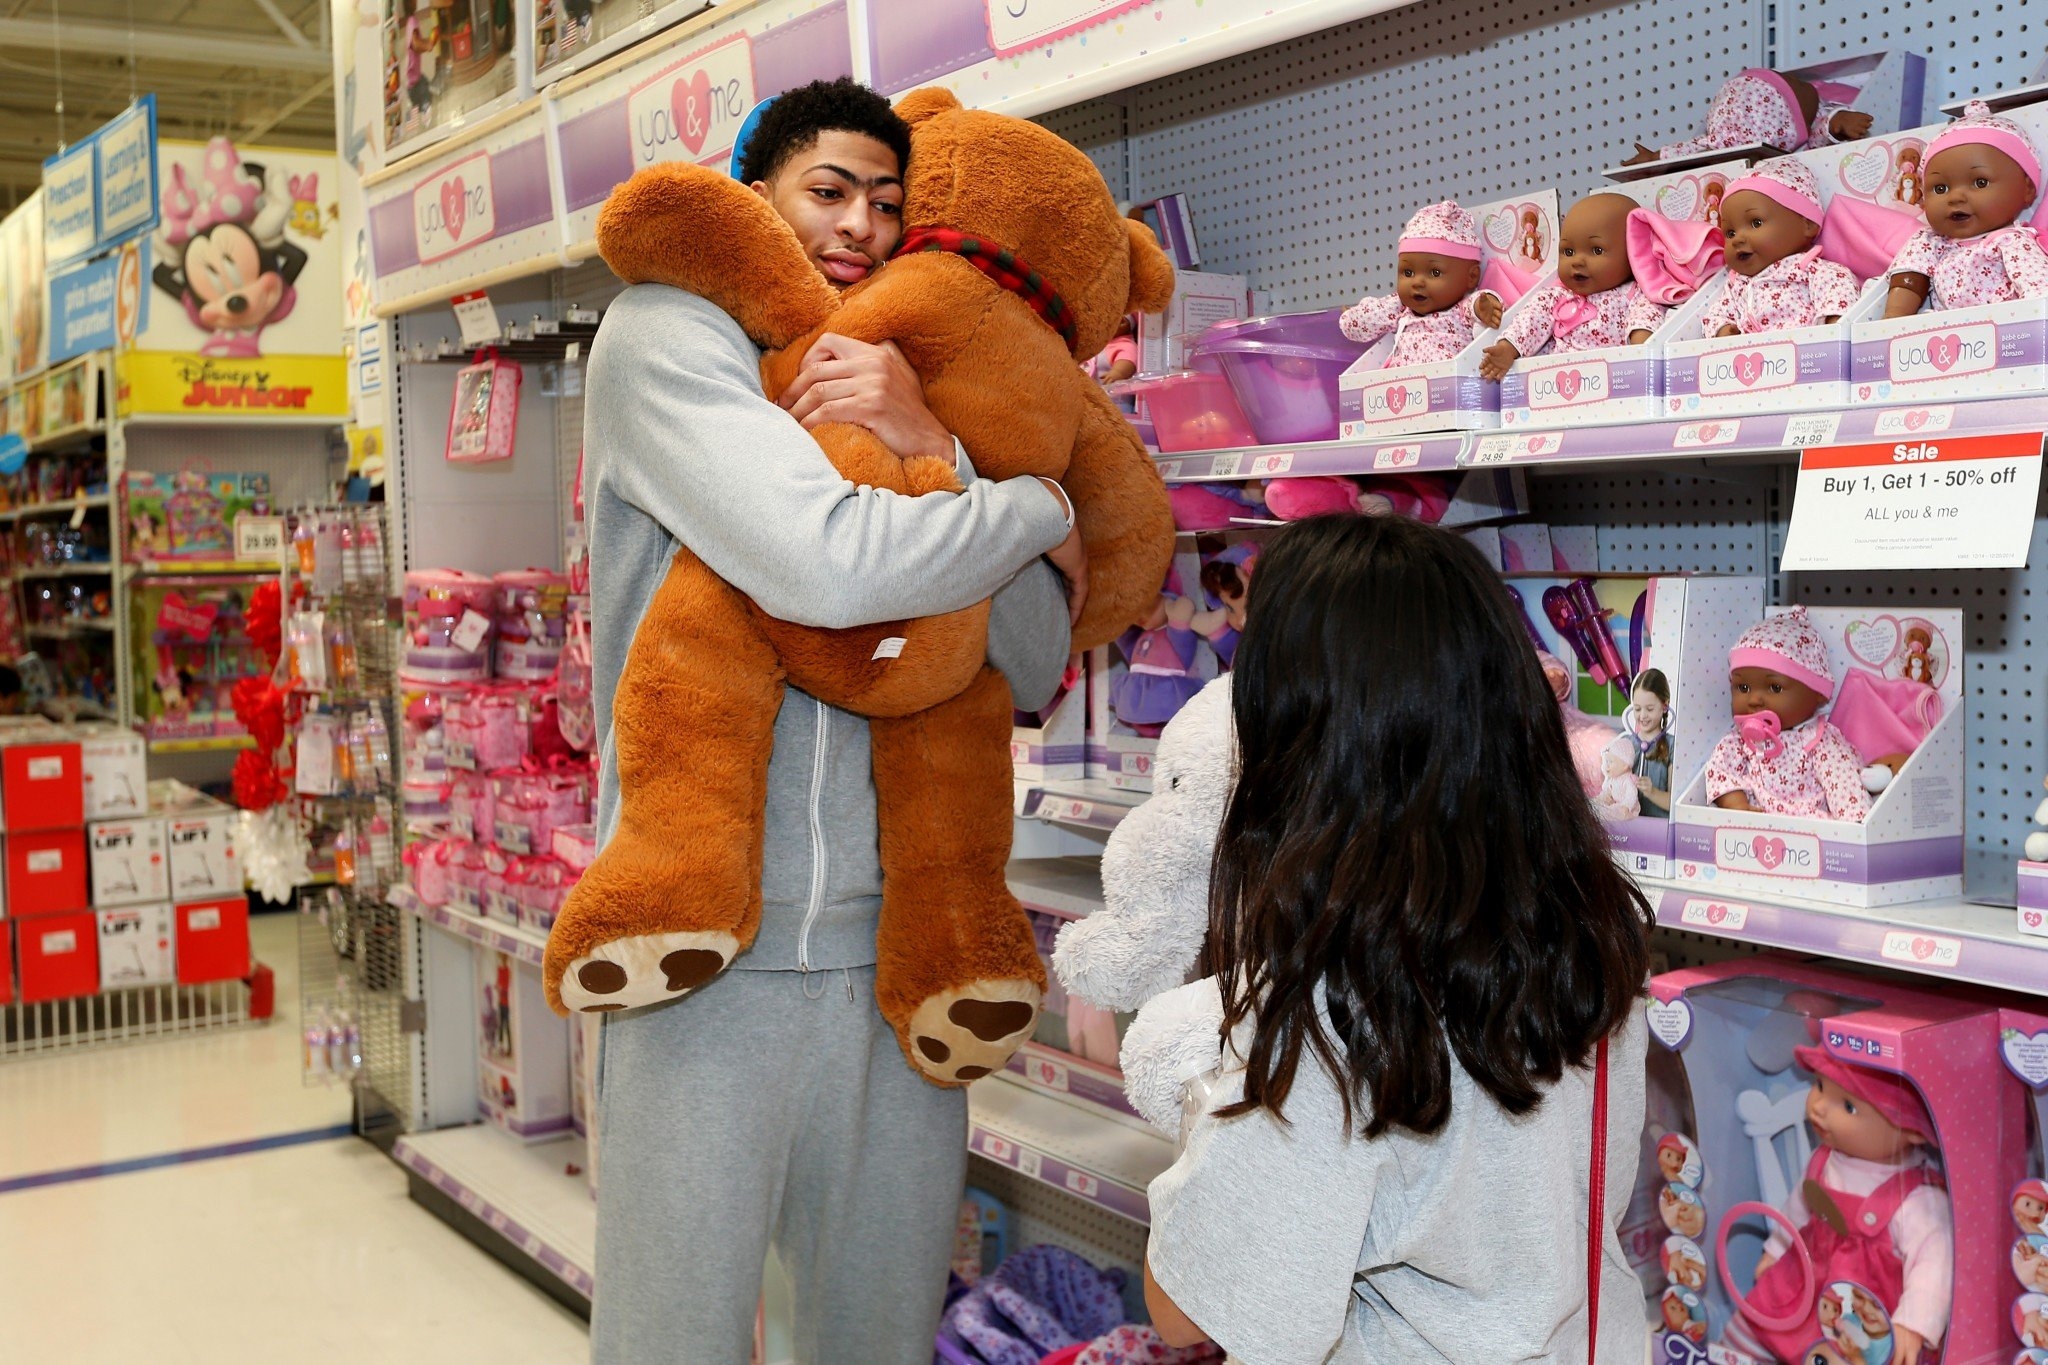 Anthony Davis embraces the holiday spirit, and a very large teddy bear, during a New Orleans Pelicans Shopping Spree event. (Getty Images)